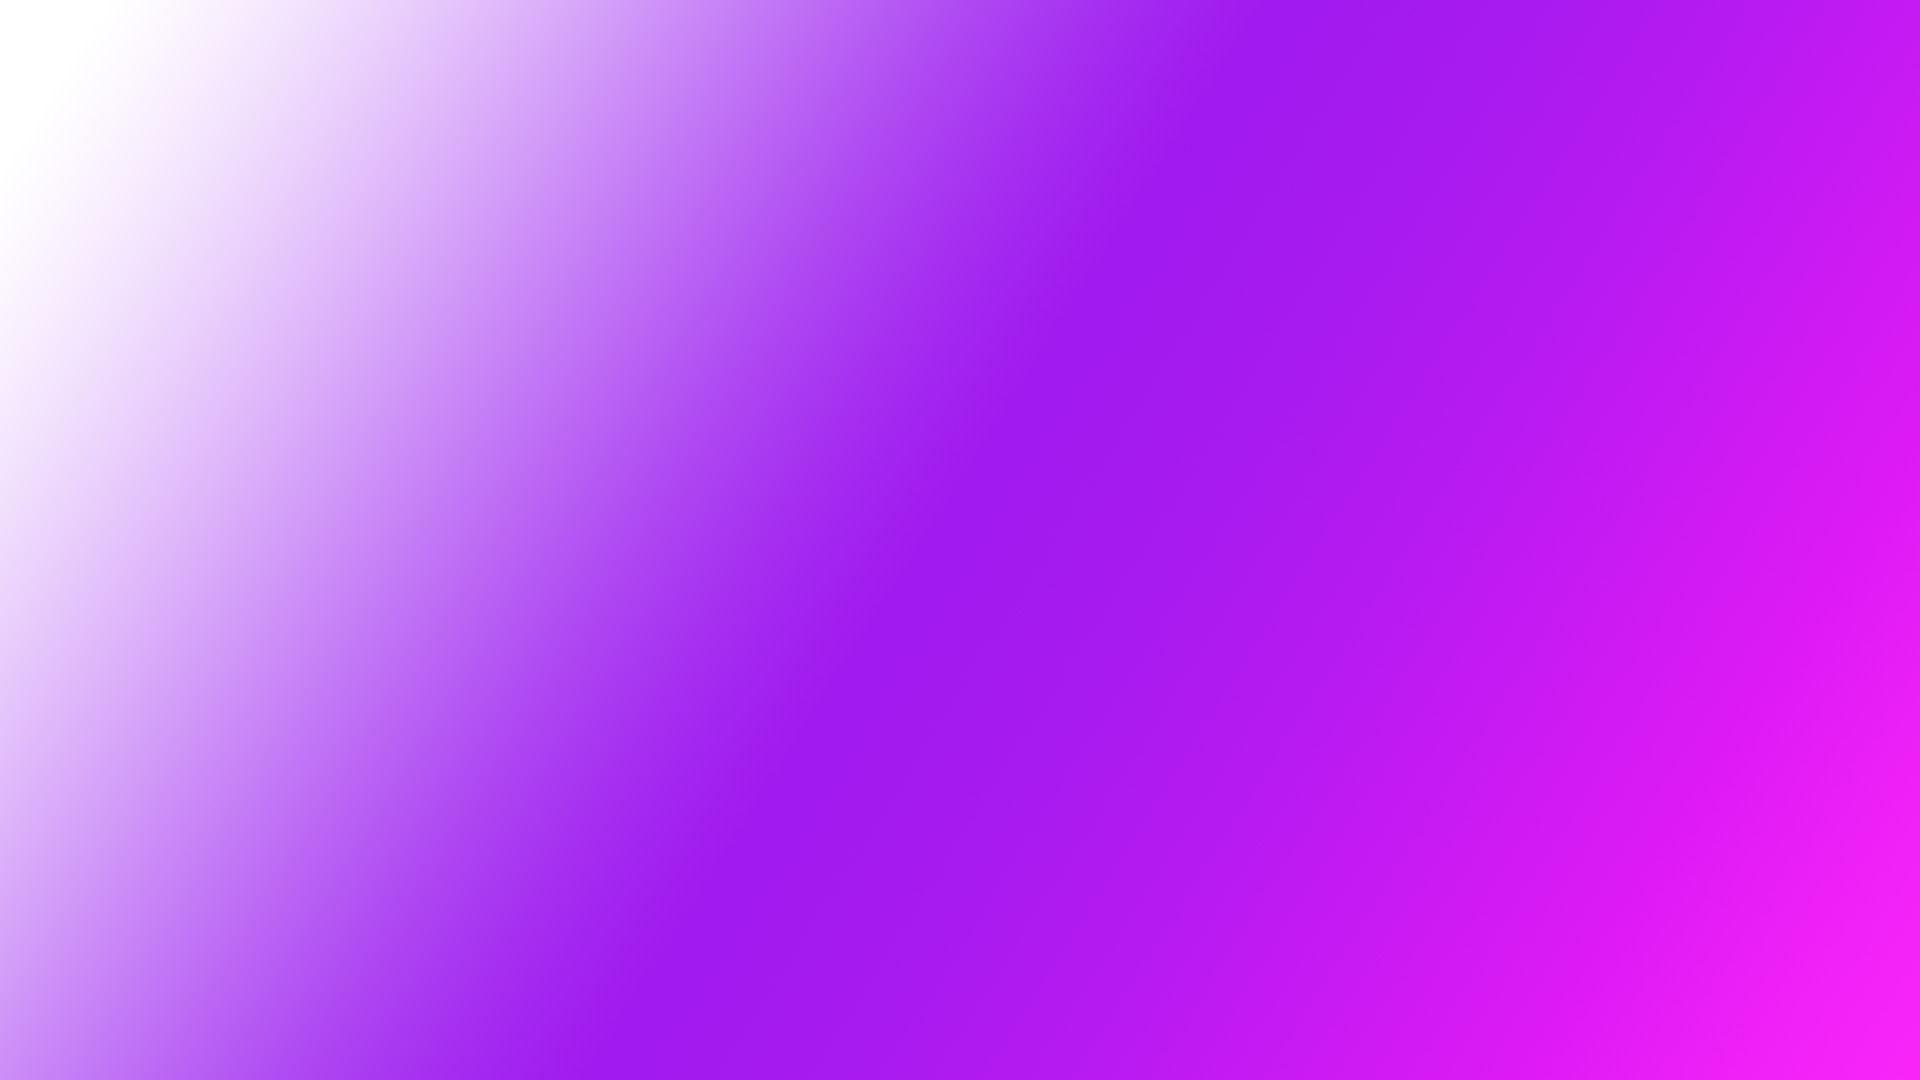 purple-Presentation-Gradient-Background